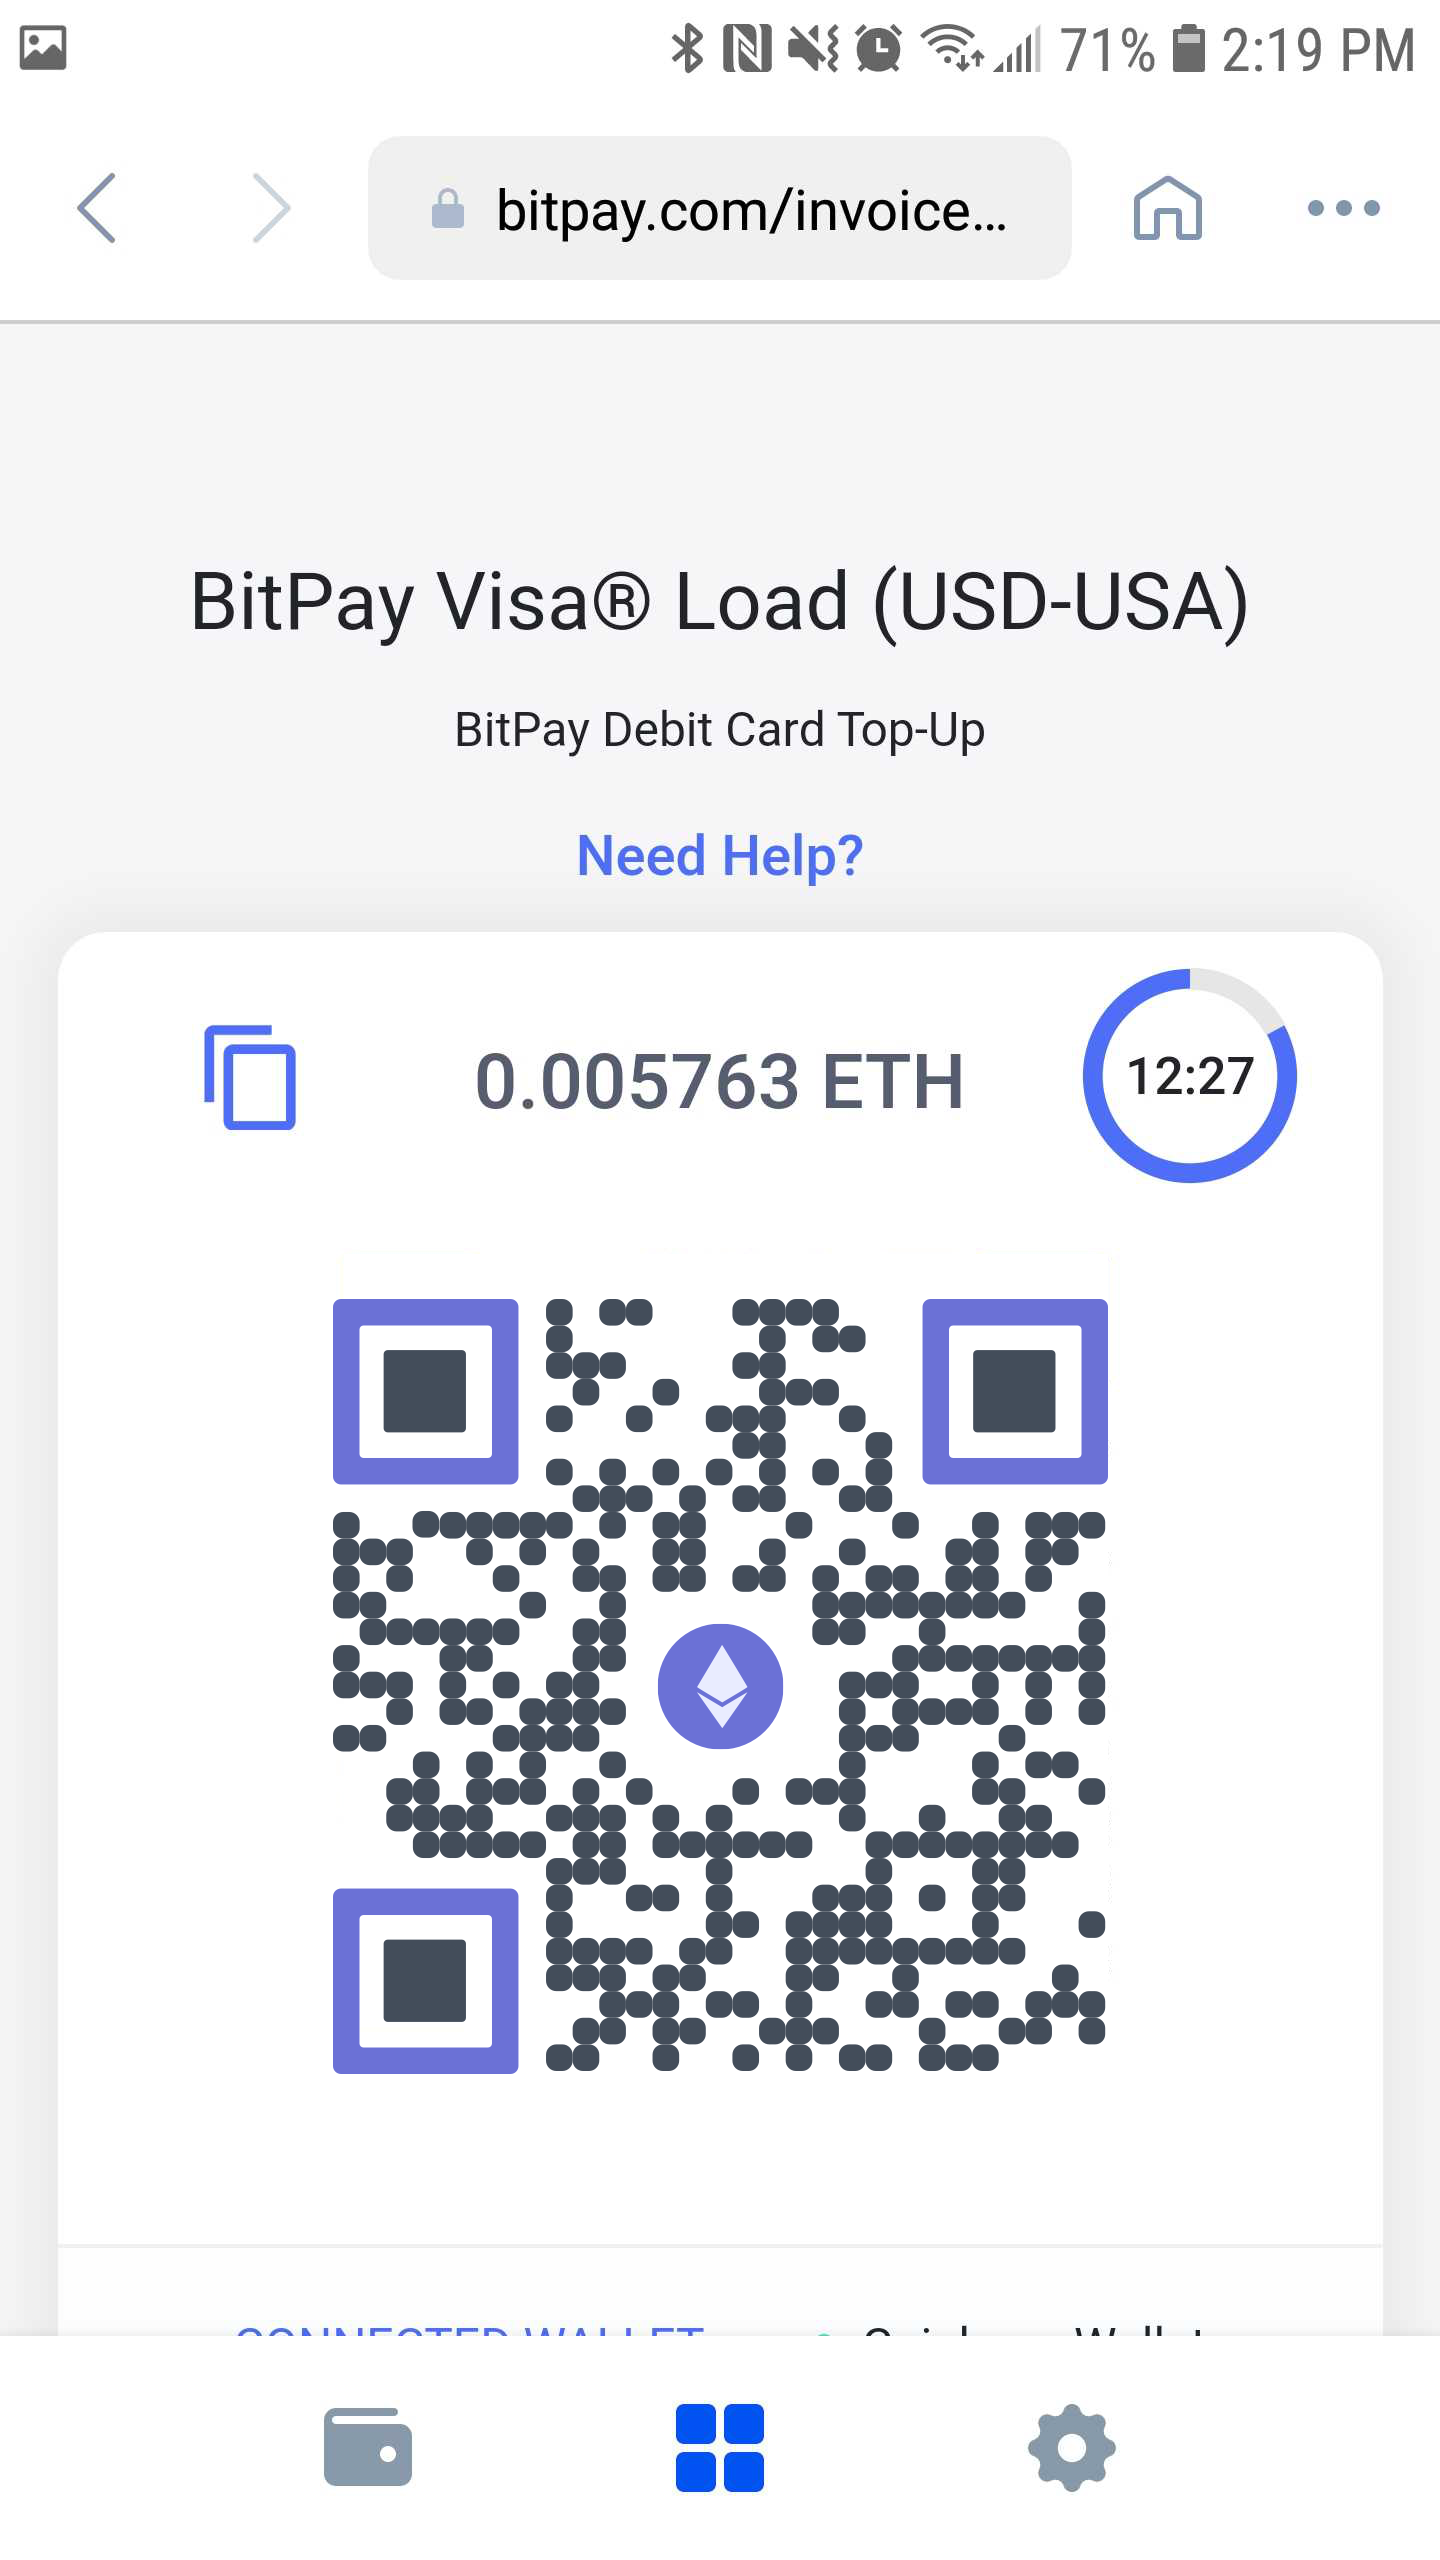 coinbase-wallet-support-eth-invoice.png